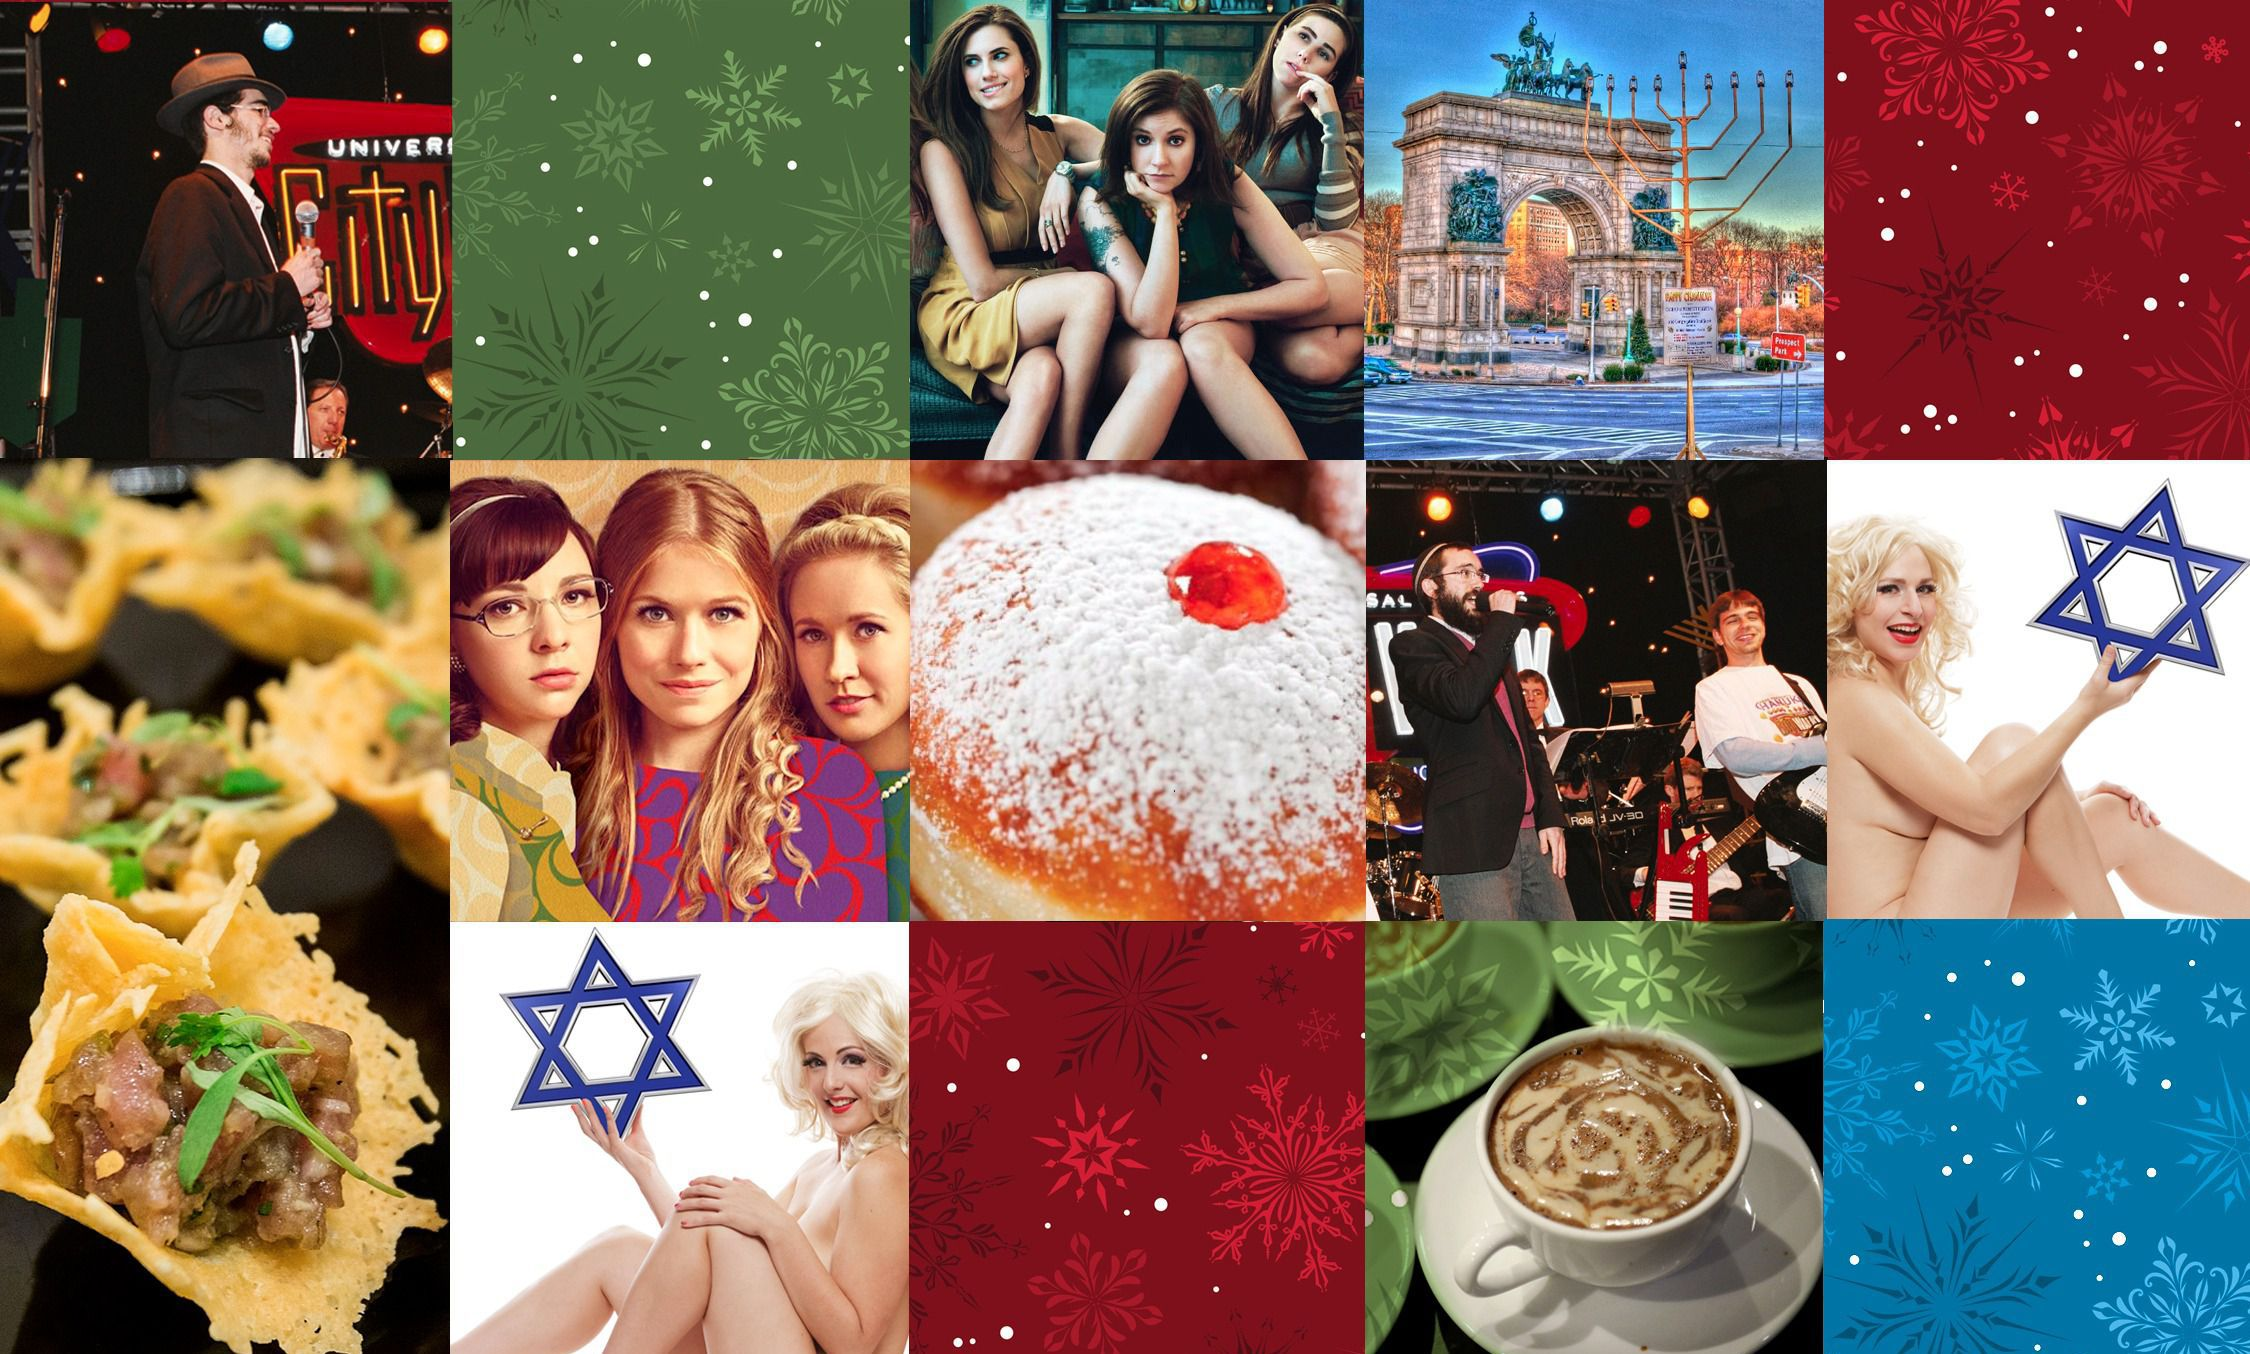 39 Things for Jews To Eat, Watch, Read and Do on Chrismukkah